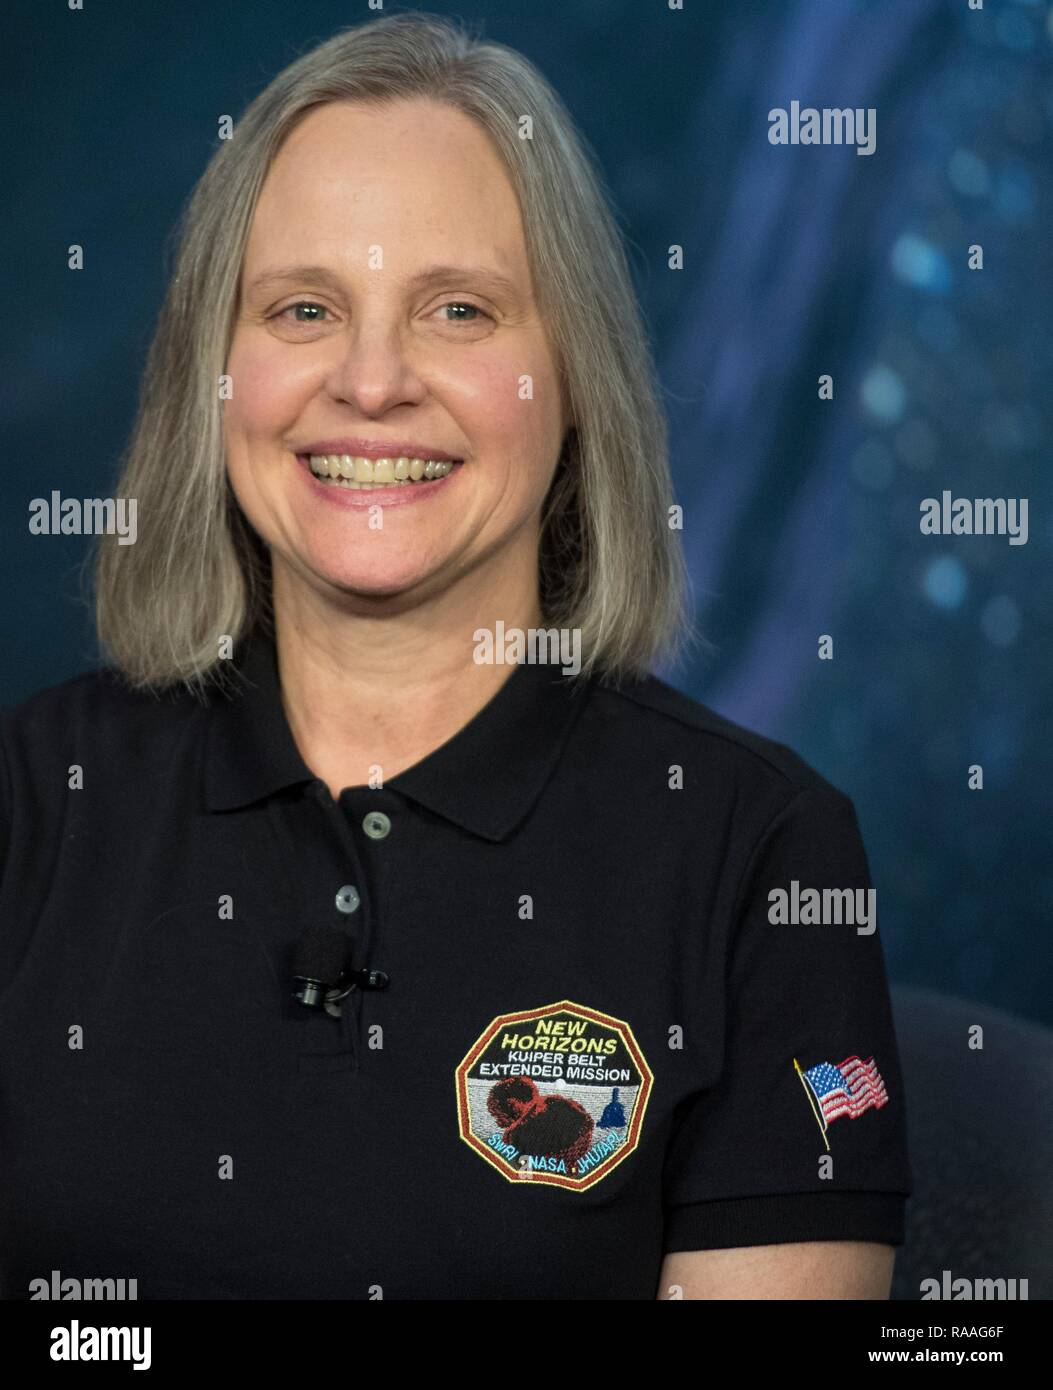 New Horizons Mission Operations Manager Alice Bowman of the Johns Hopkins University Applied Physics Laboratory  during a press conference following the successful flyby of Ultima Thule by the New Horizon spacecraft at Johns Hopkins University Applied Physics Laboratory January 1, 2019 in Laurel, Maryland. The flyby by the space probe occurred 6.5bn km (4bn miles) away, making it the most distant ever exploration of an object in our Solar System. - Stock Image